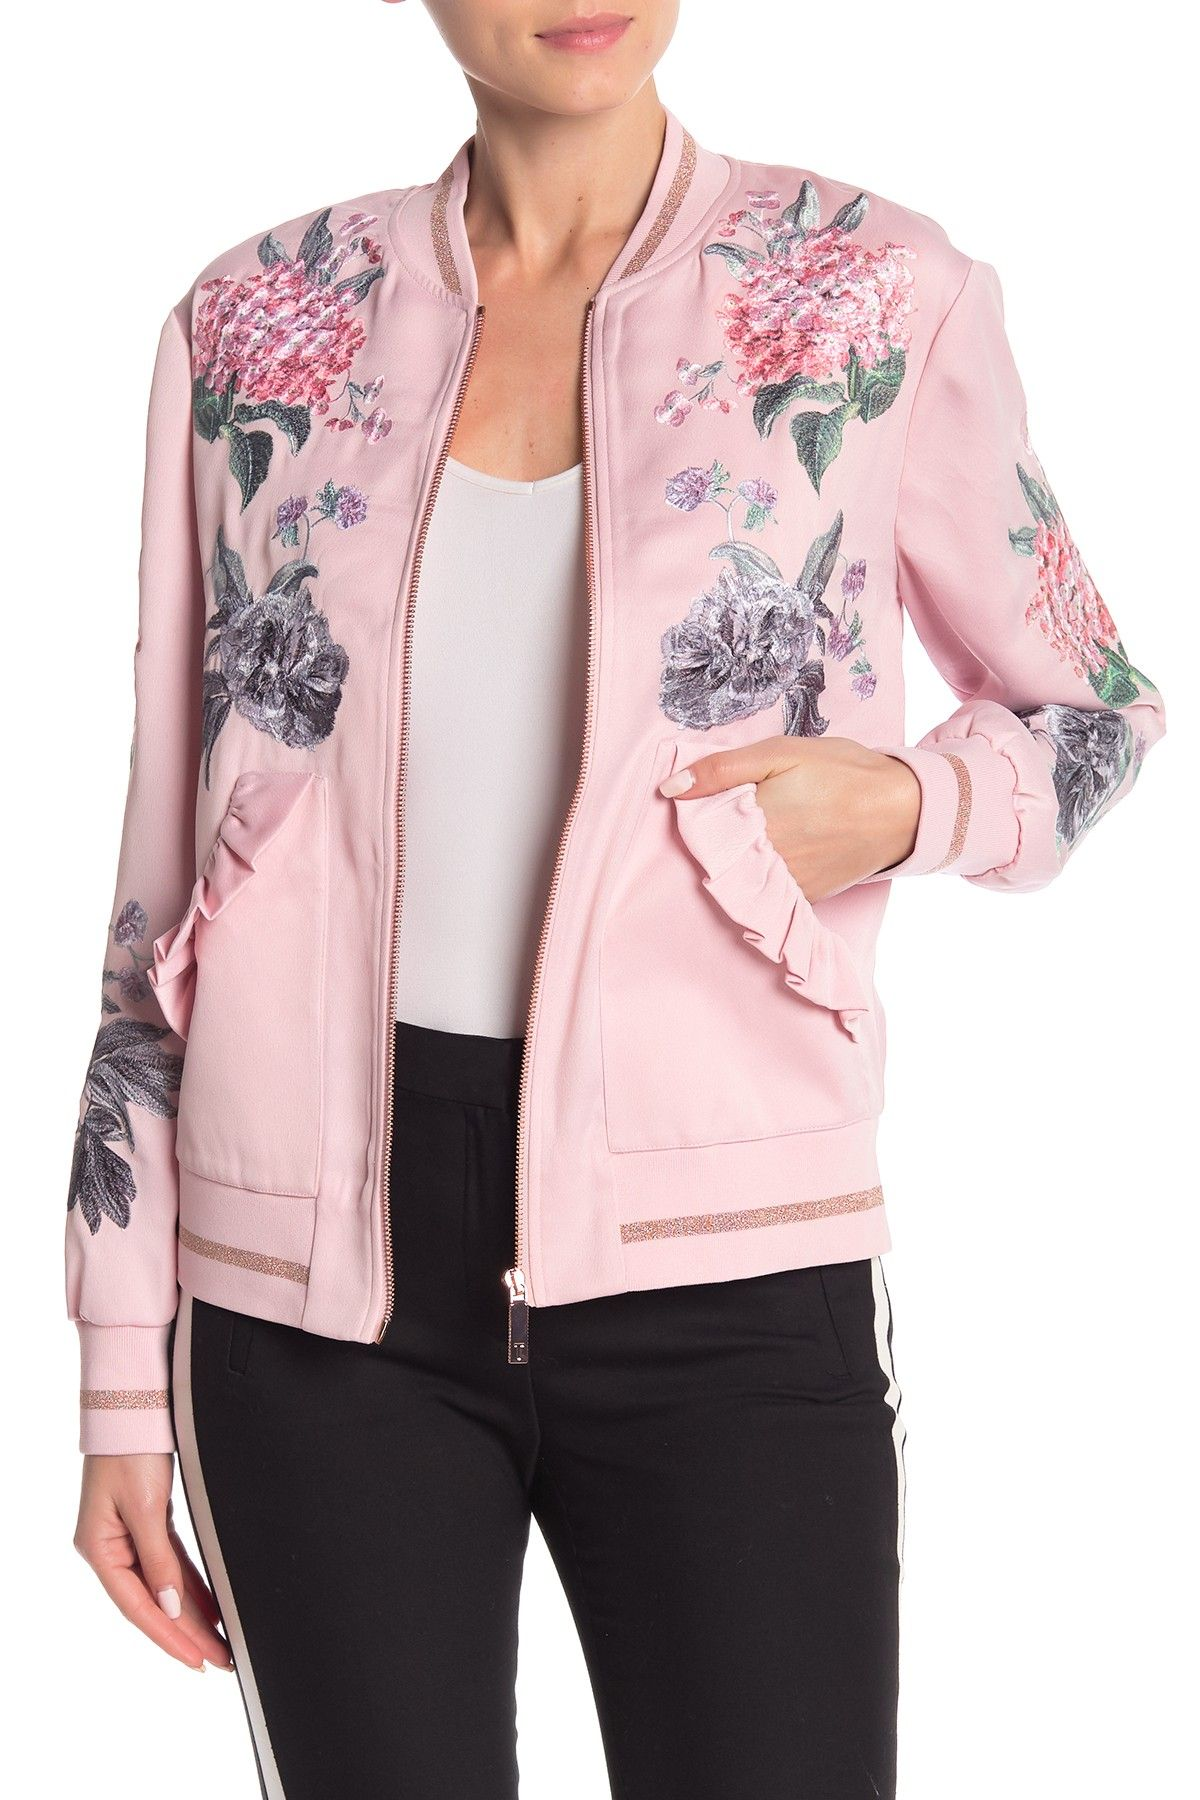 Ted Baker London Palace Gardens Ruffle Bomber Jacket Is Now 49 Off Free Shipping On Orders Over 100 Bomber Jacket Ted Baker London Ted Baker [ 1800 x 1200 Pixel ]